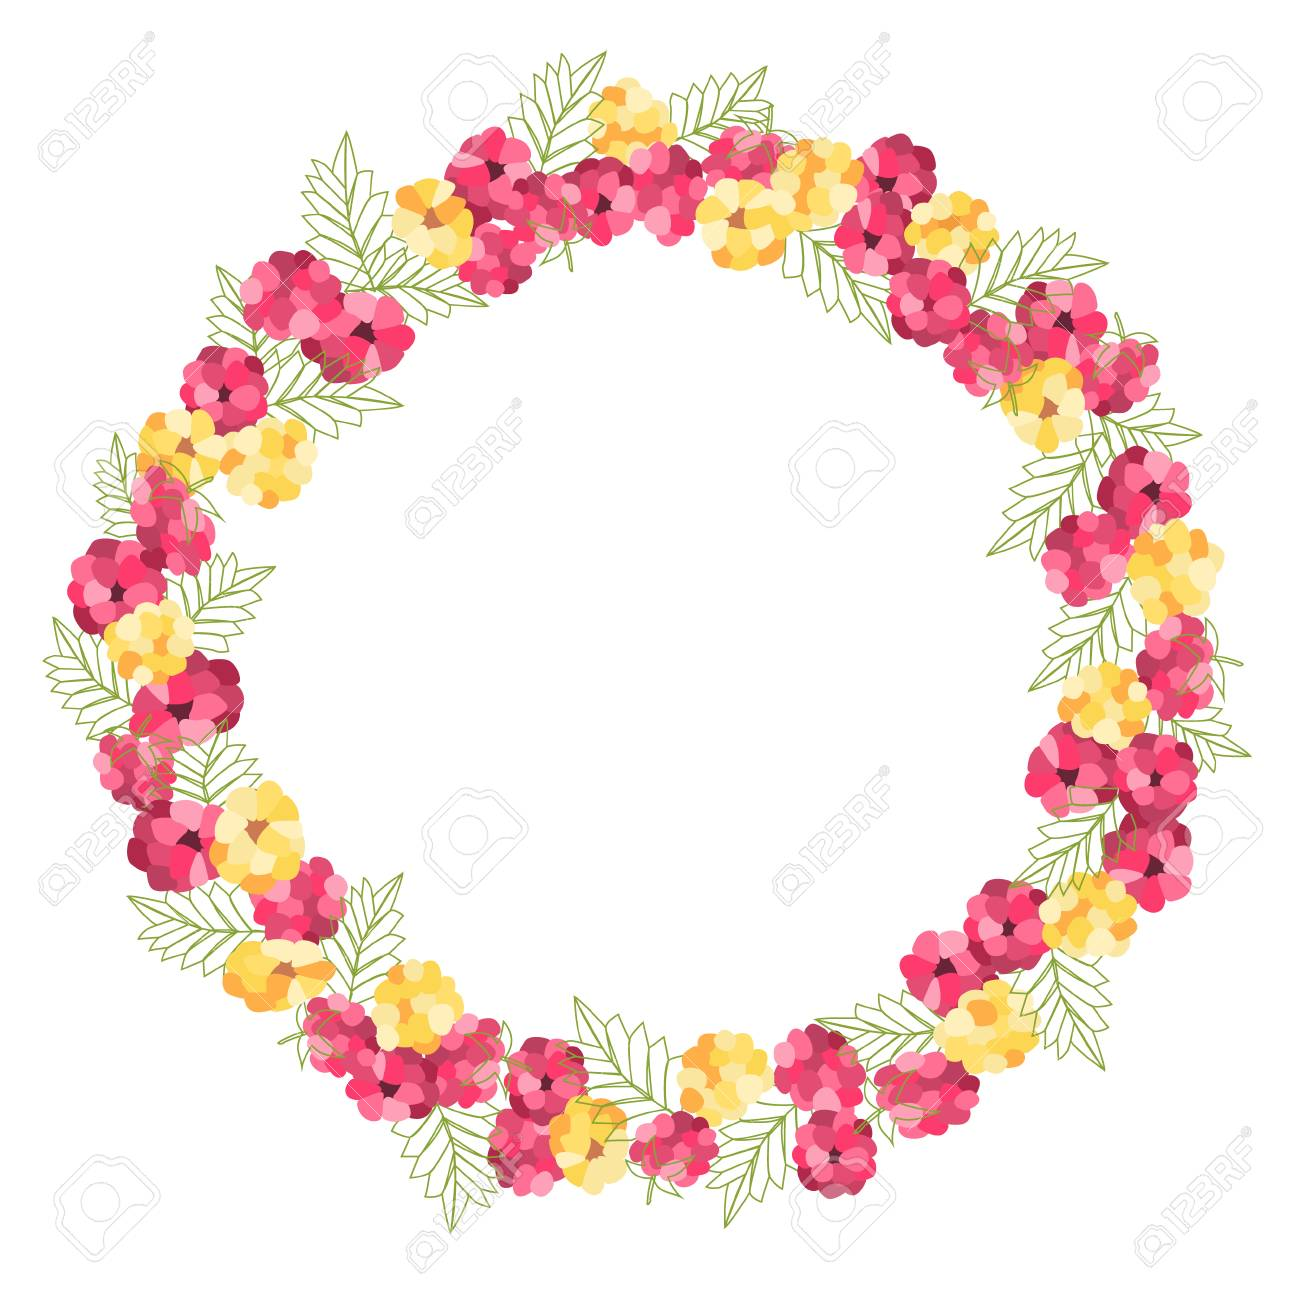 Wreath Of Stylized Raspberries For Thank You Card Greeting Card